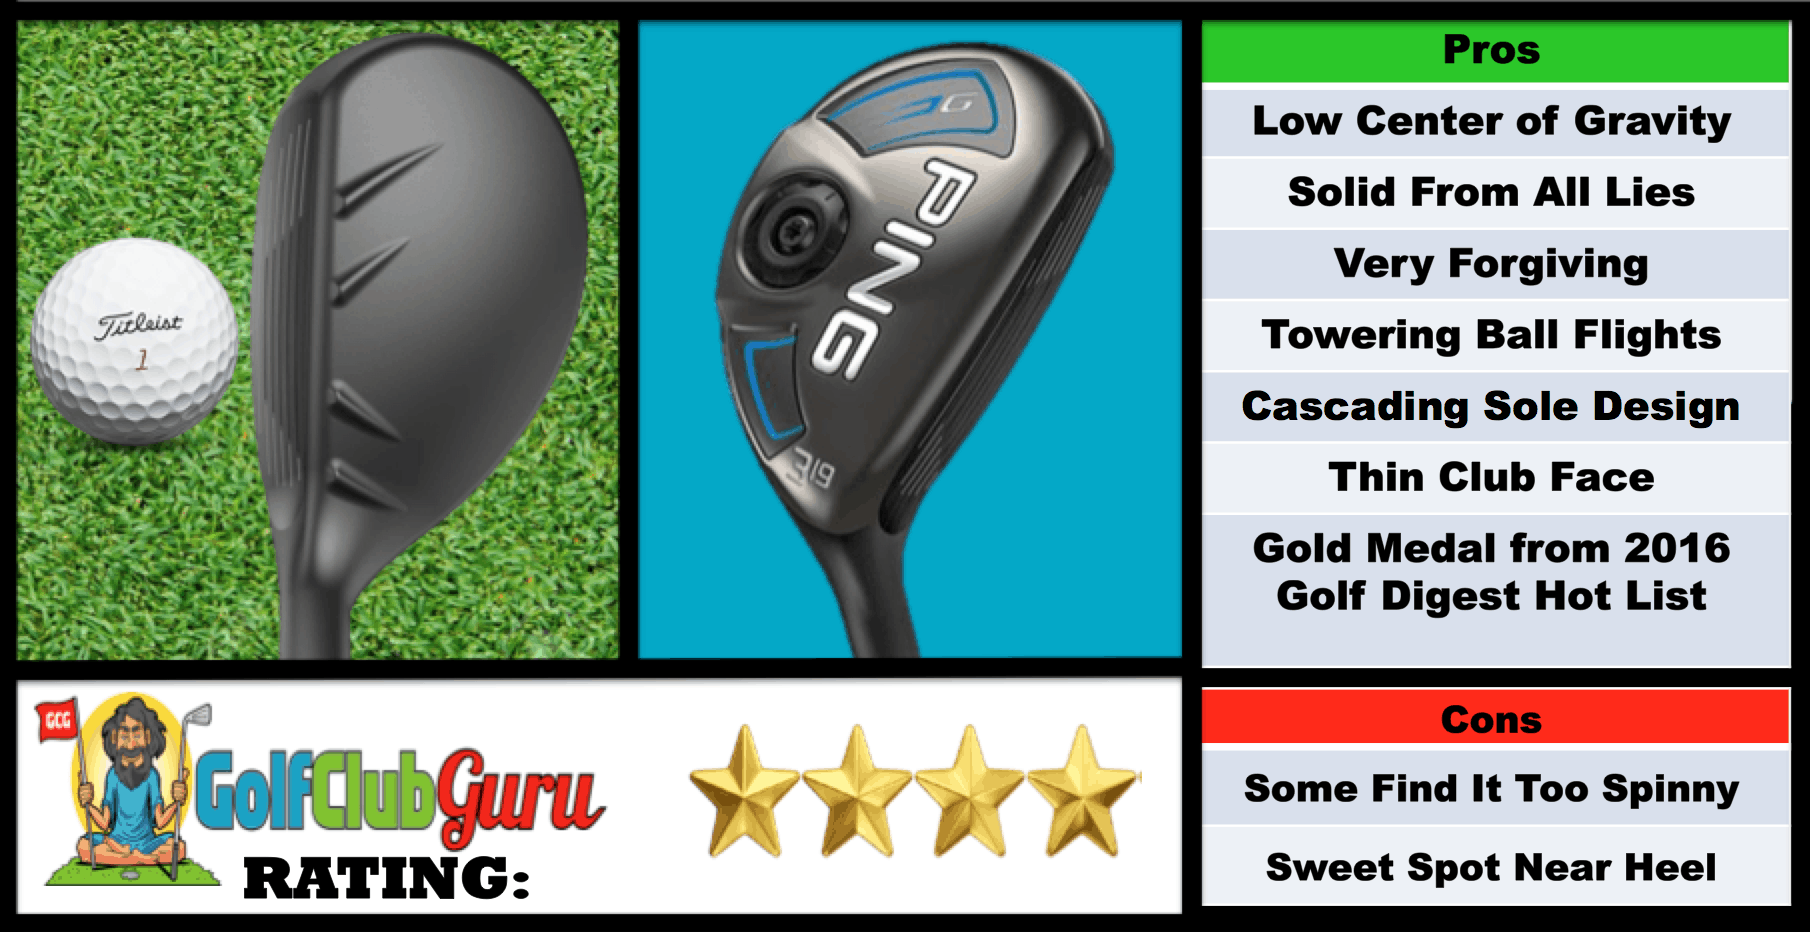 Ping G Hybrid Pros Cons Review